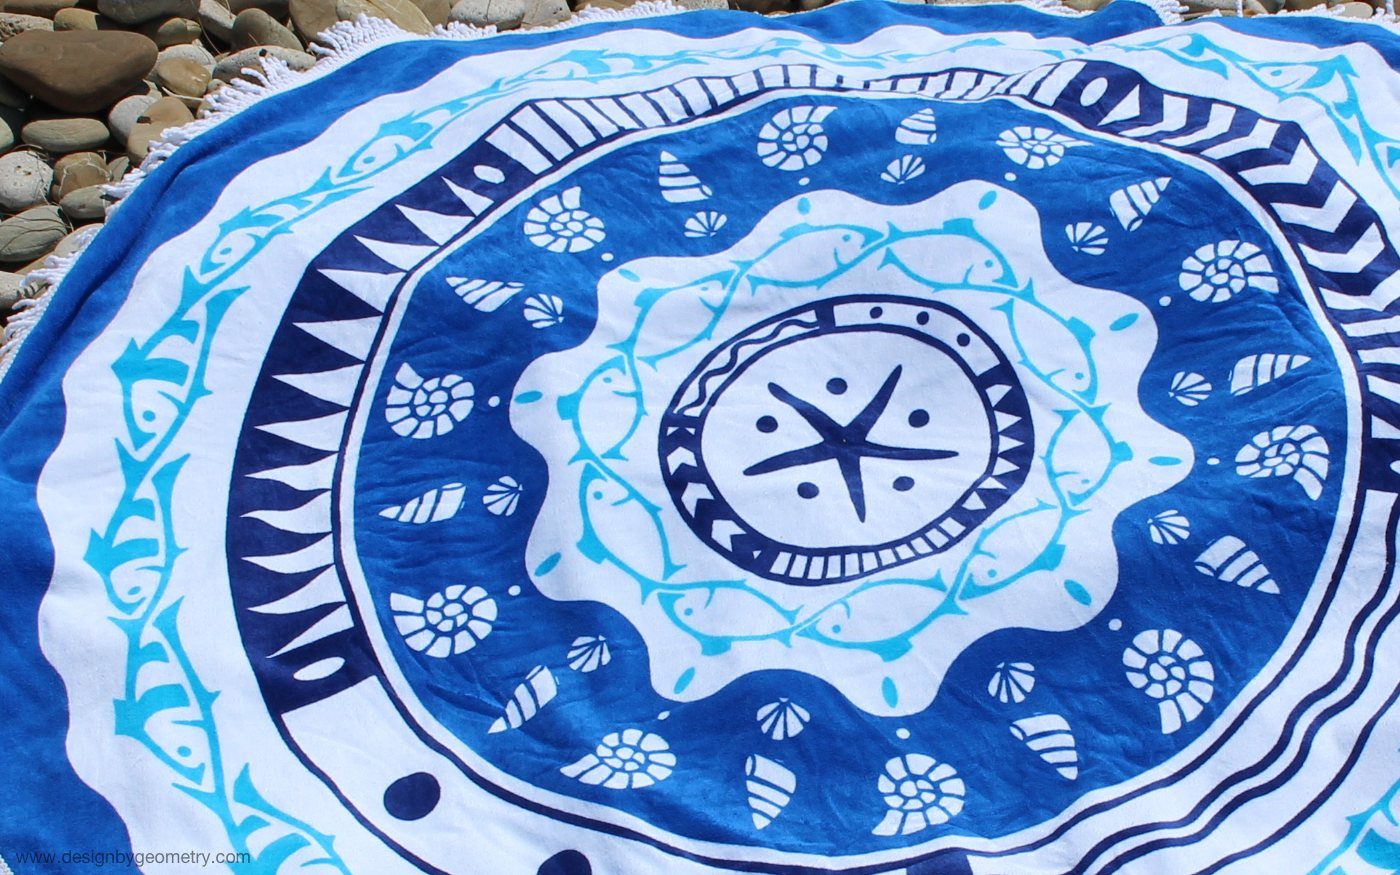 Urchin round towel designed by Chris Heath